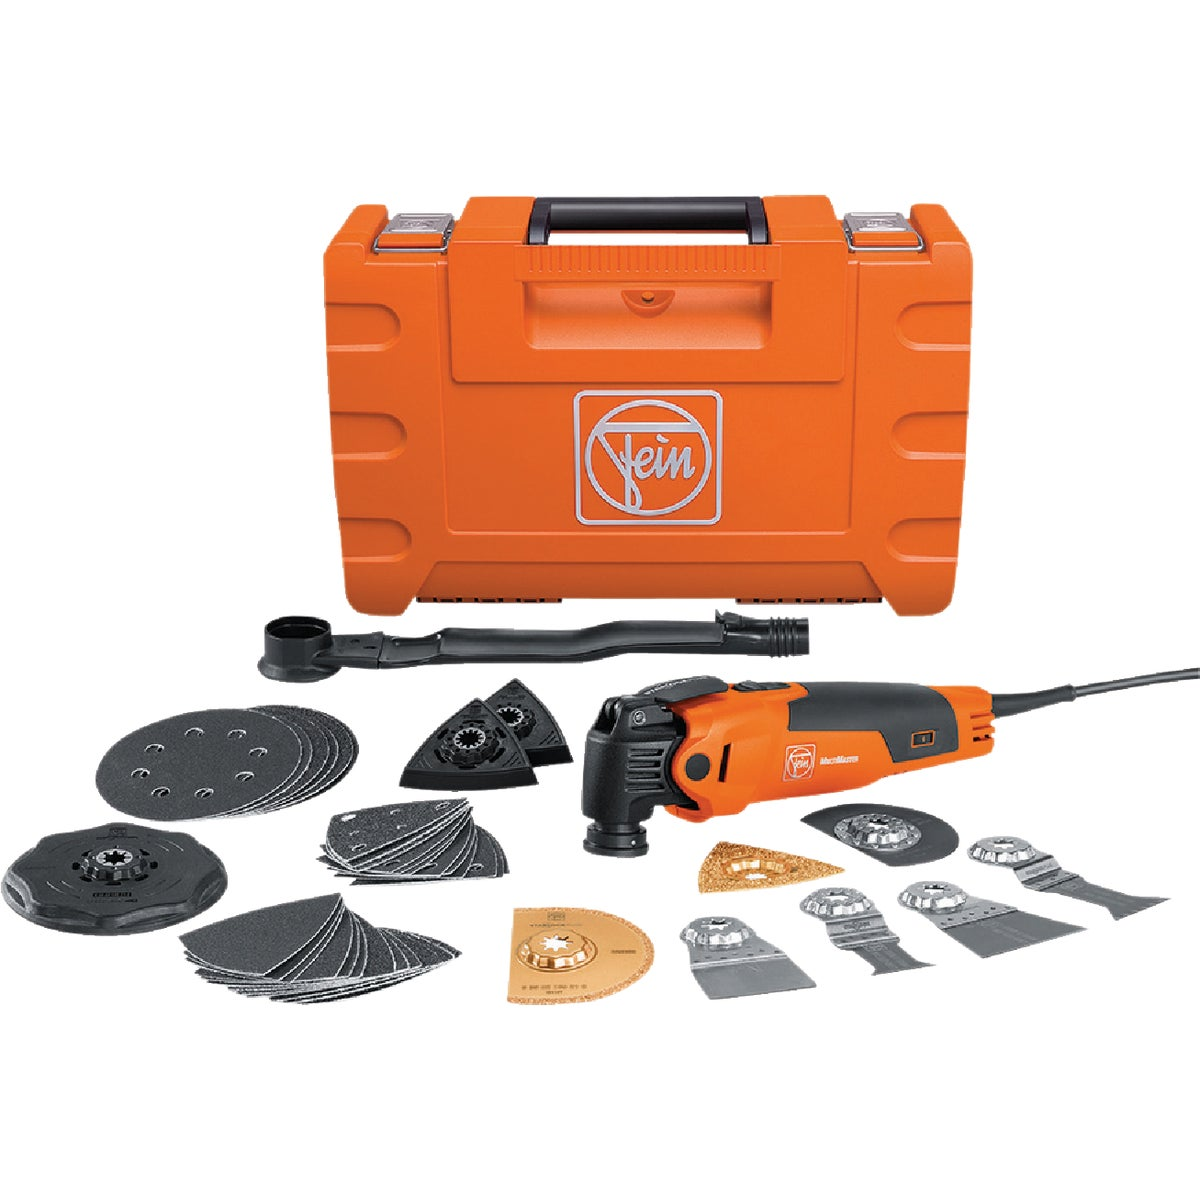 MULTIMASTER TOP PLUS - 72293768090 by Fein Power Tools